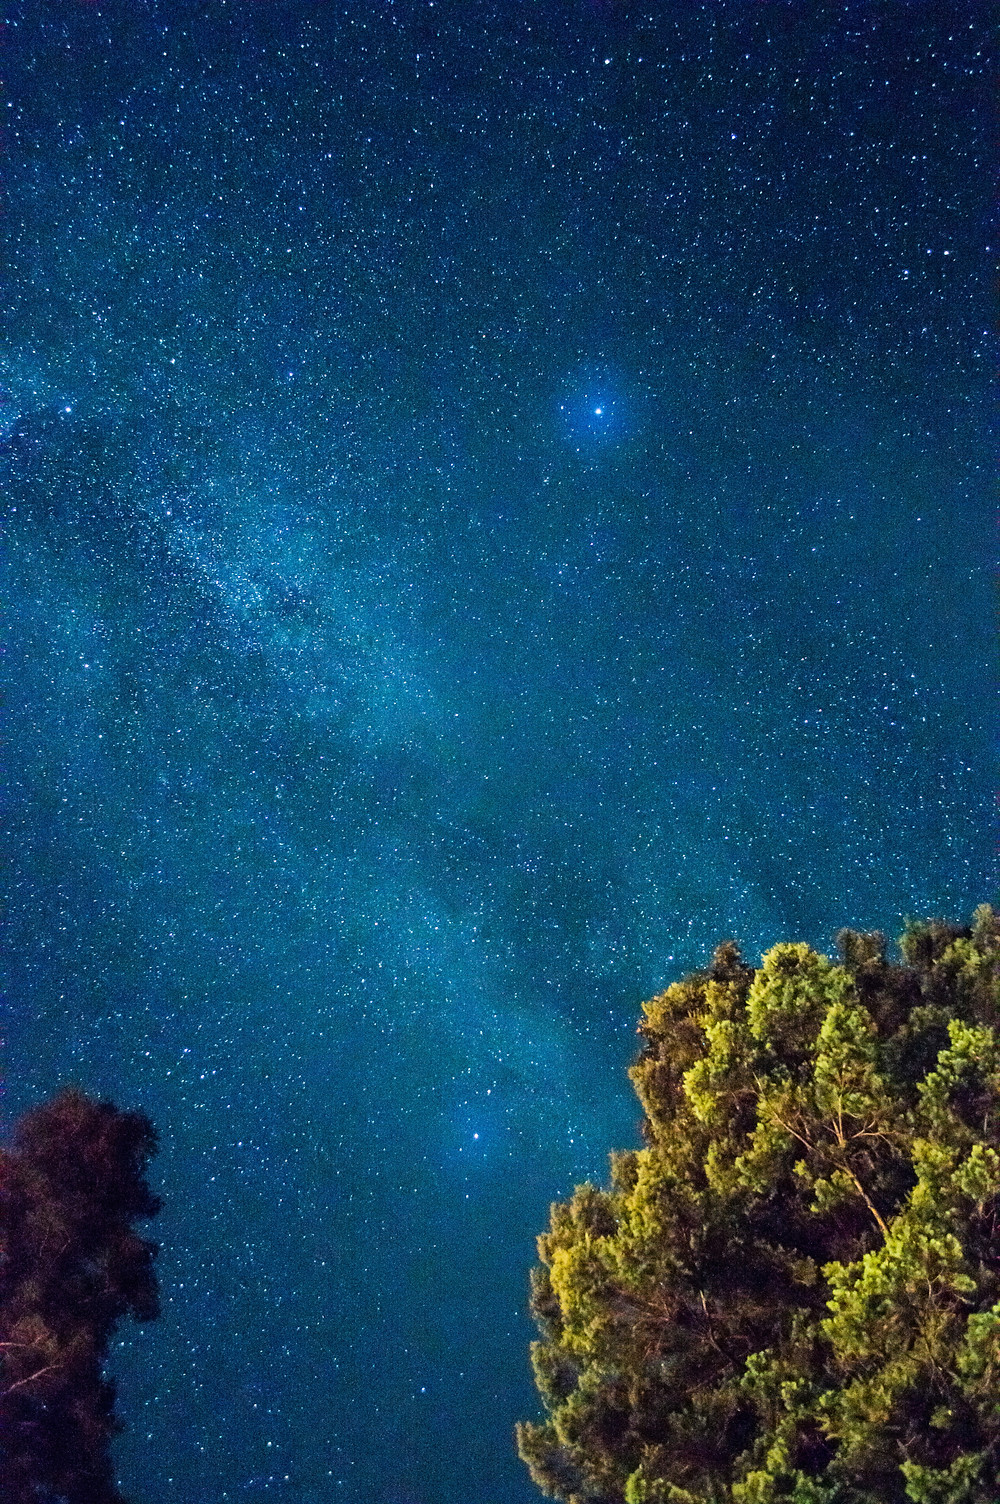 Nightsky with Trees in the foreground